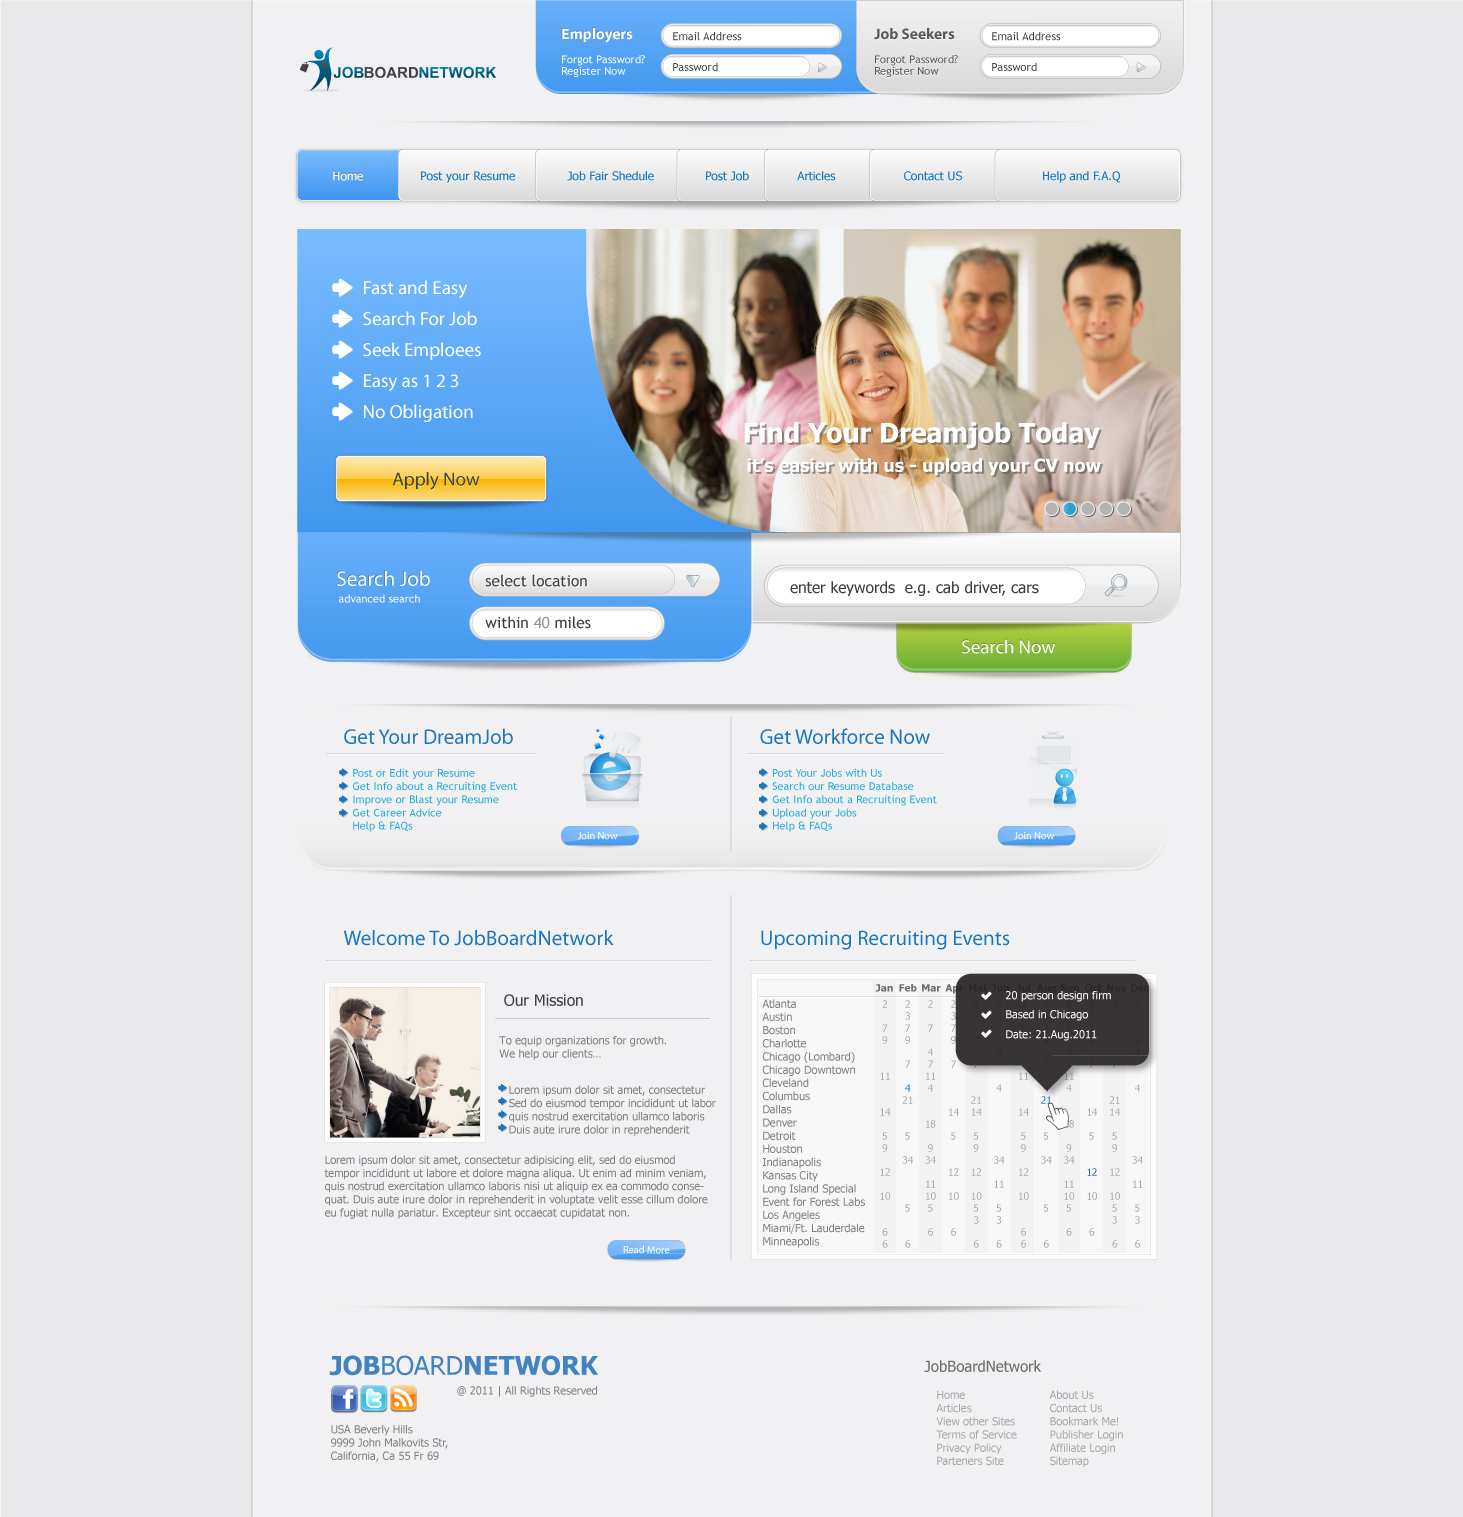 job board community website design services job board website design services